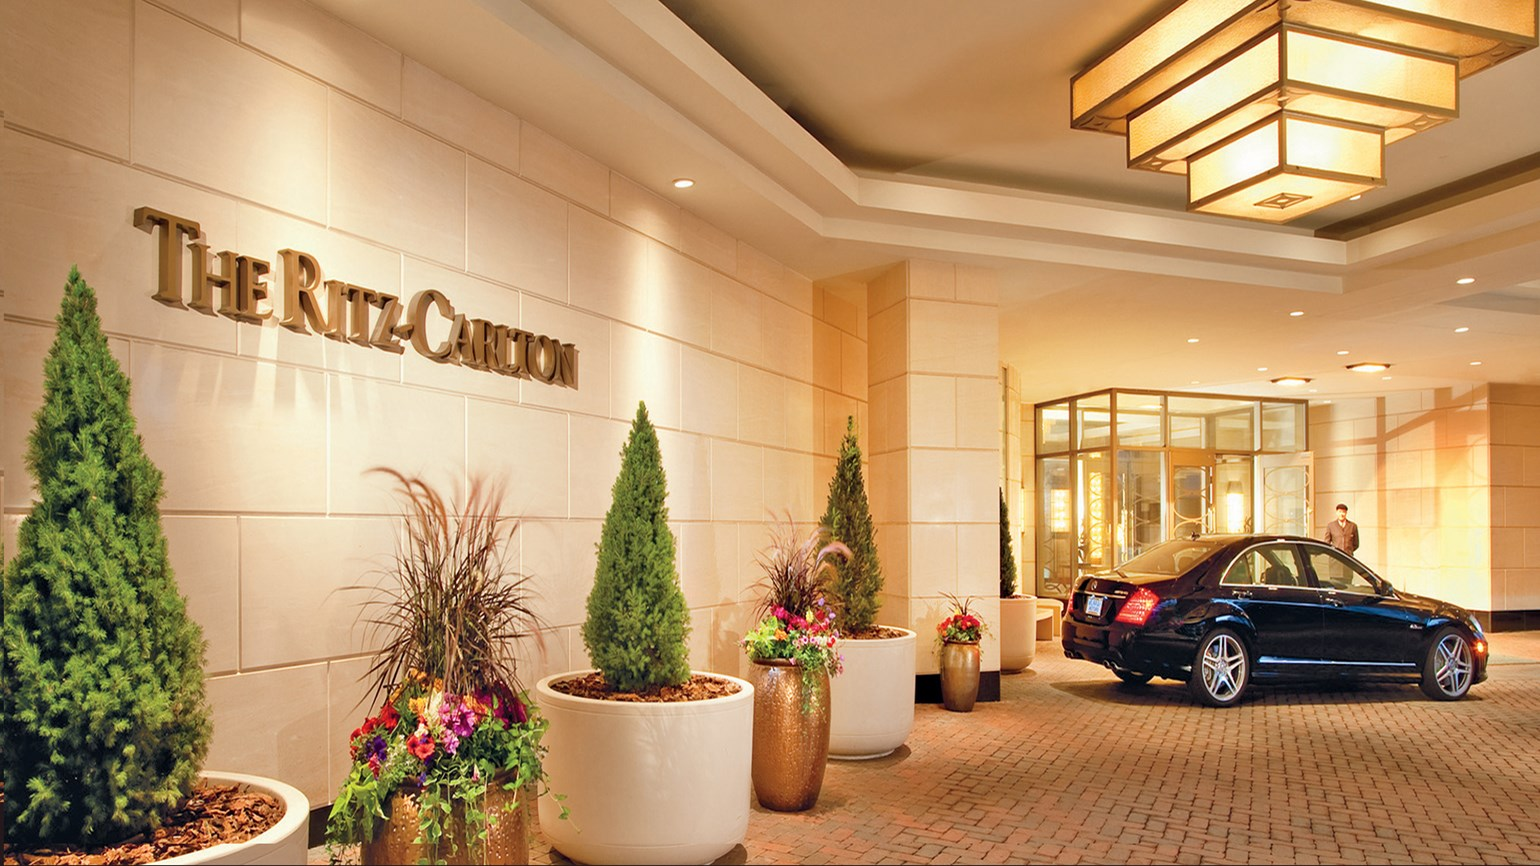 Marriott's luxury brands lead slight Q4 demand gain